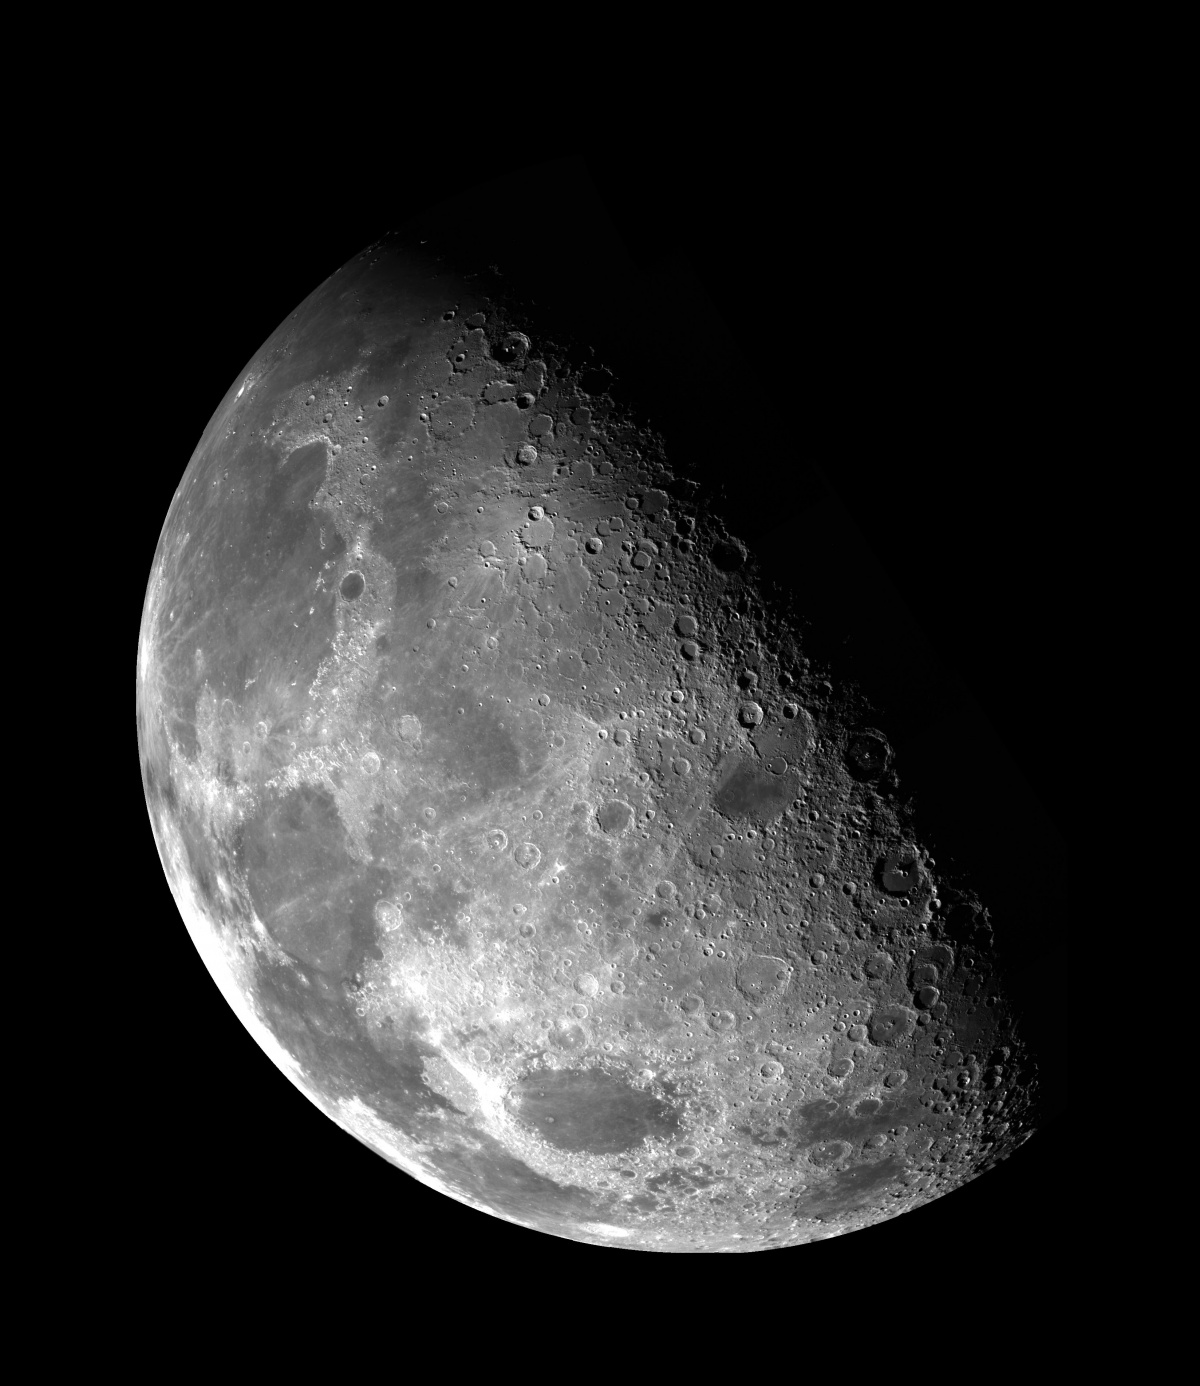 Solar Radiation Found to Have Significant Effect on Tiny Moon Iron Nanoparticles, Study